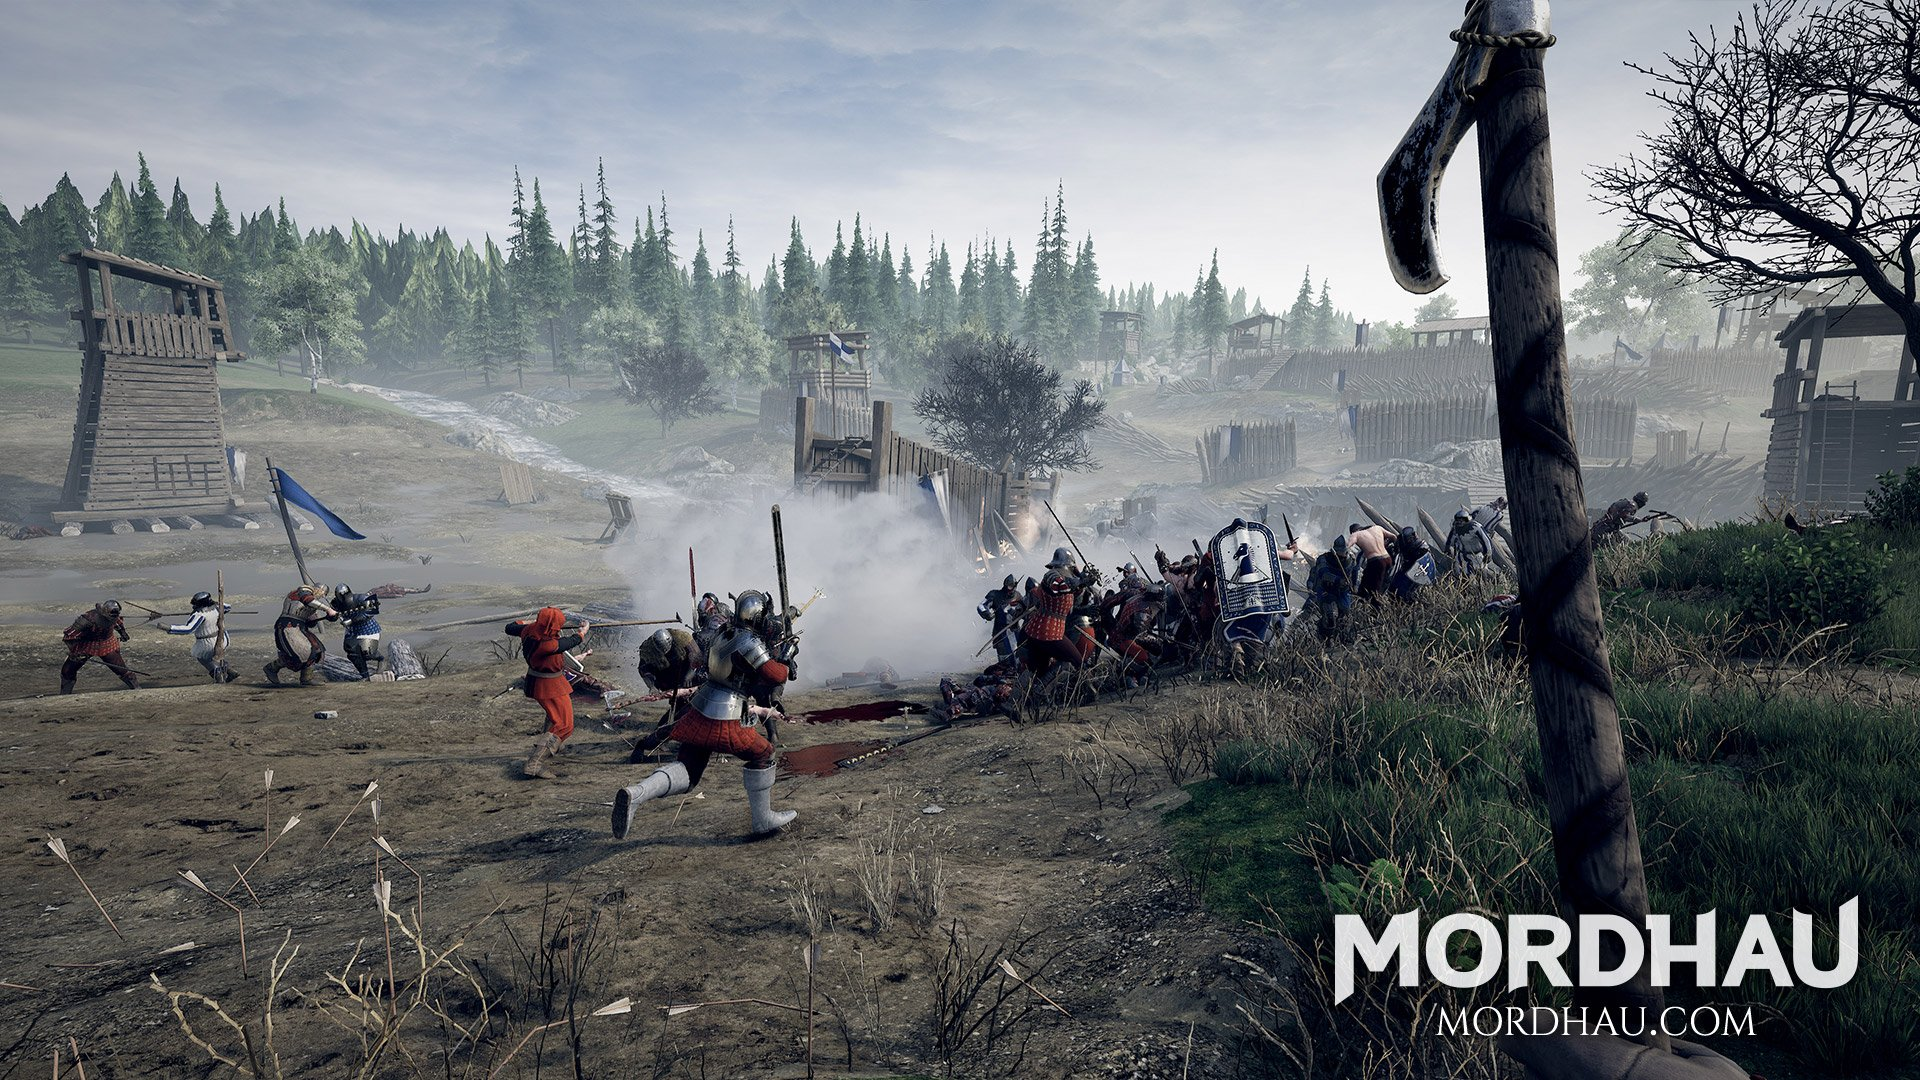 In Mordhau, there are no single-player options aside from playing offline with bots. Triternion has no future plans to add a single-player campaign to Mordhau.